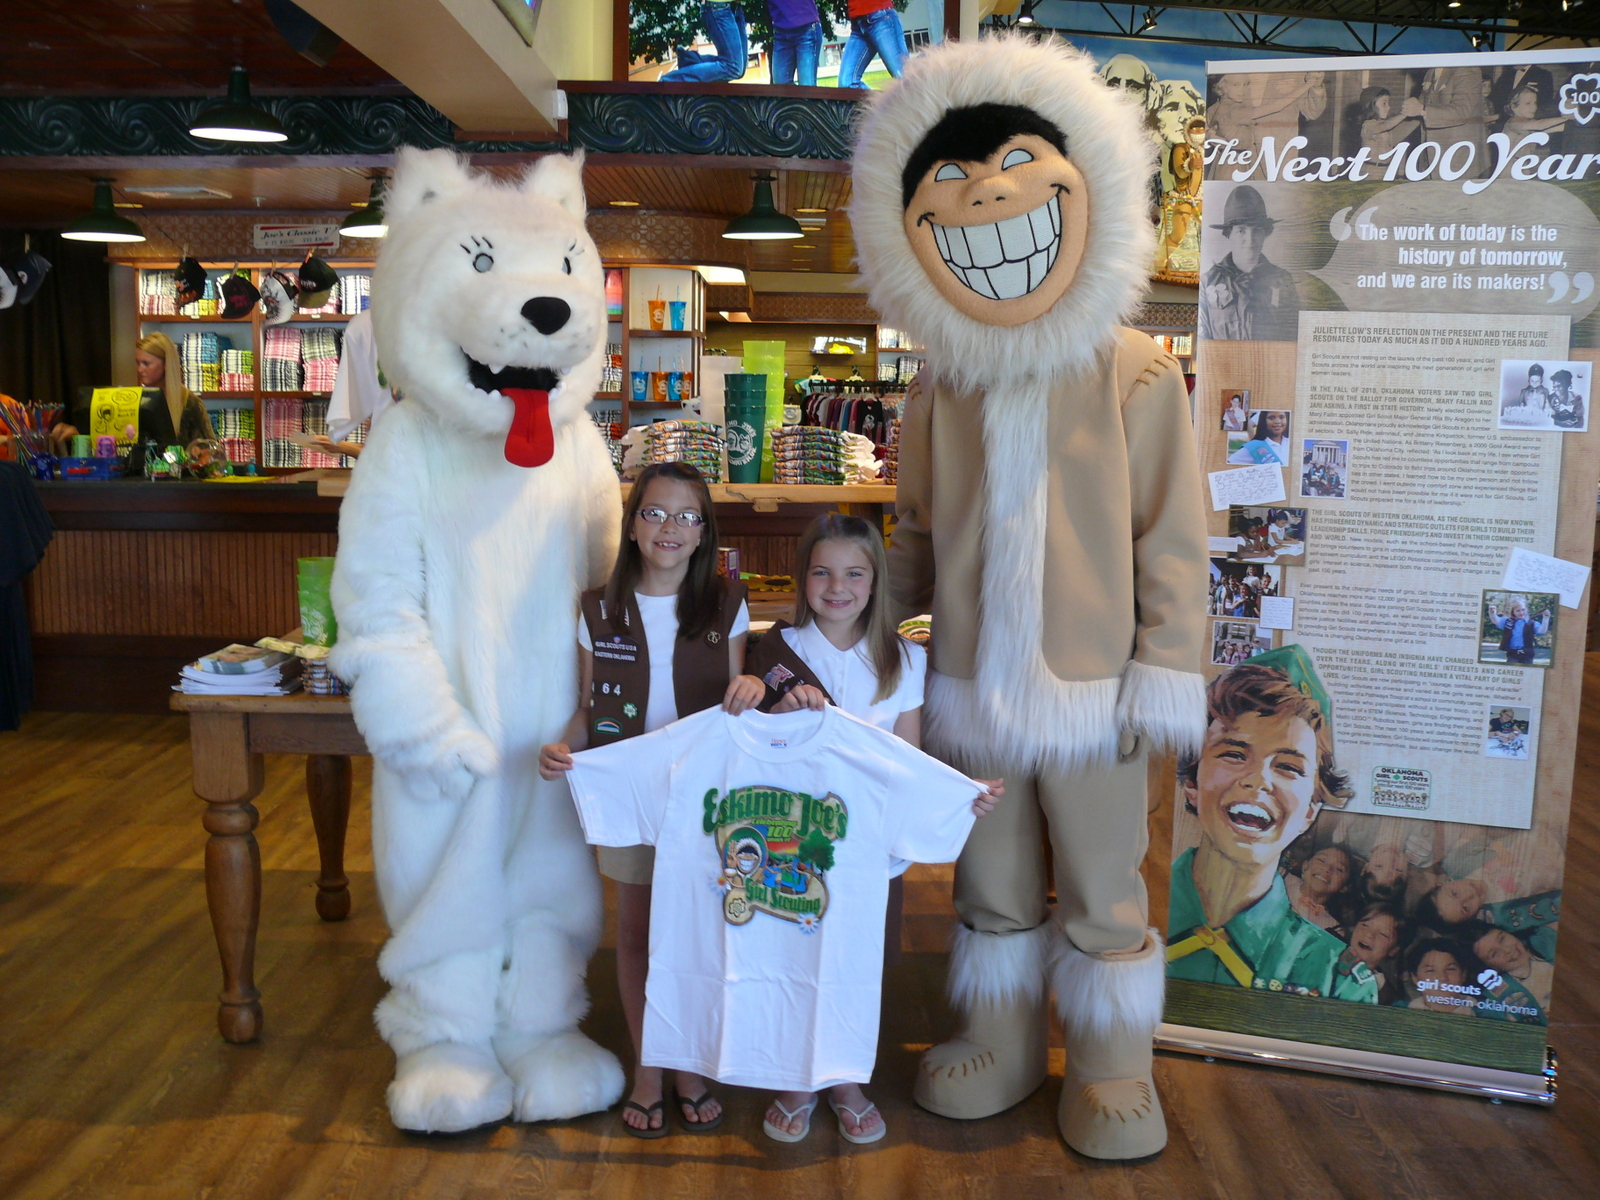 Eskimo Joe&#39;s unveils Girl Scouts&#39; 100th anniversary t-shirt with Stillwater Girl Scouts Lydia and Kirstyn and friends Buffy and Eskimo Joe.